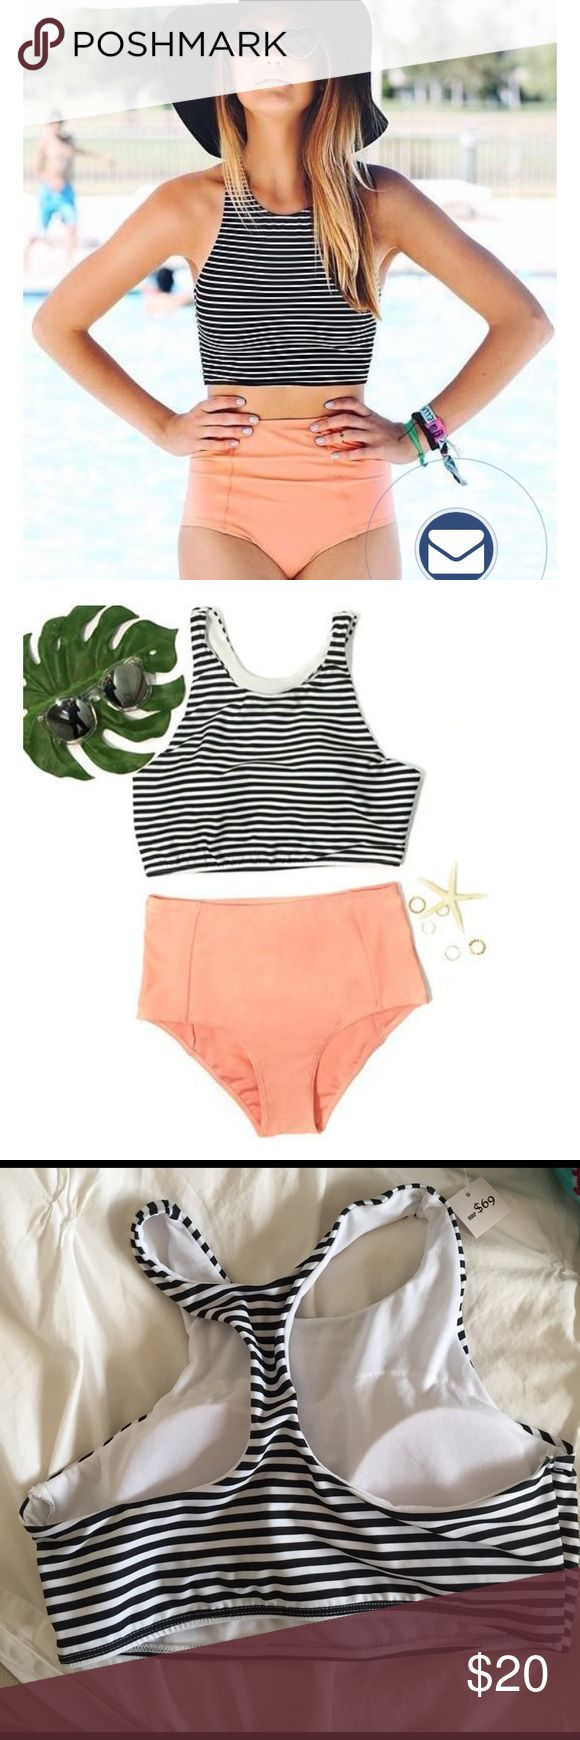 High waisted bikini with striped top Super cute high waisted bikini bottoms, peach colored and black and white striped top. New with protective seal, never been worn. 100% polyester. I typically wear a size small, these run a tad small Swim Bikinis